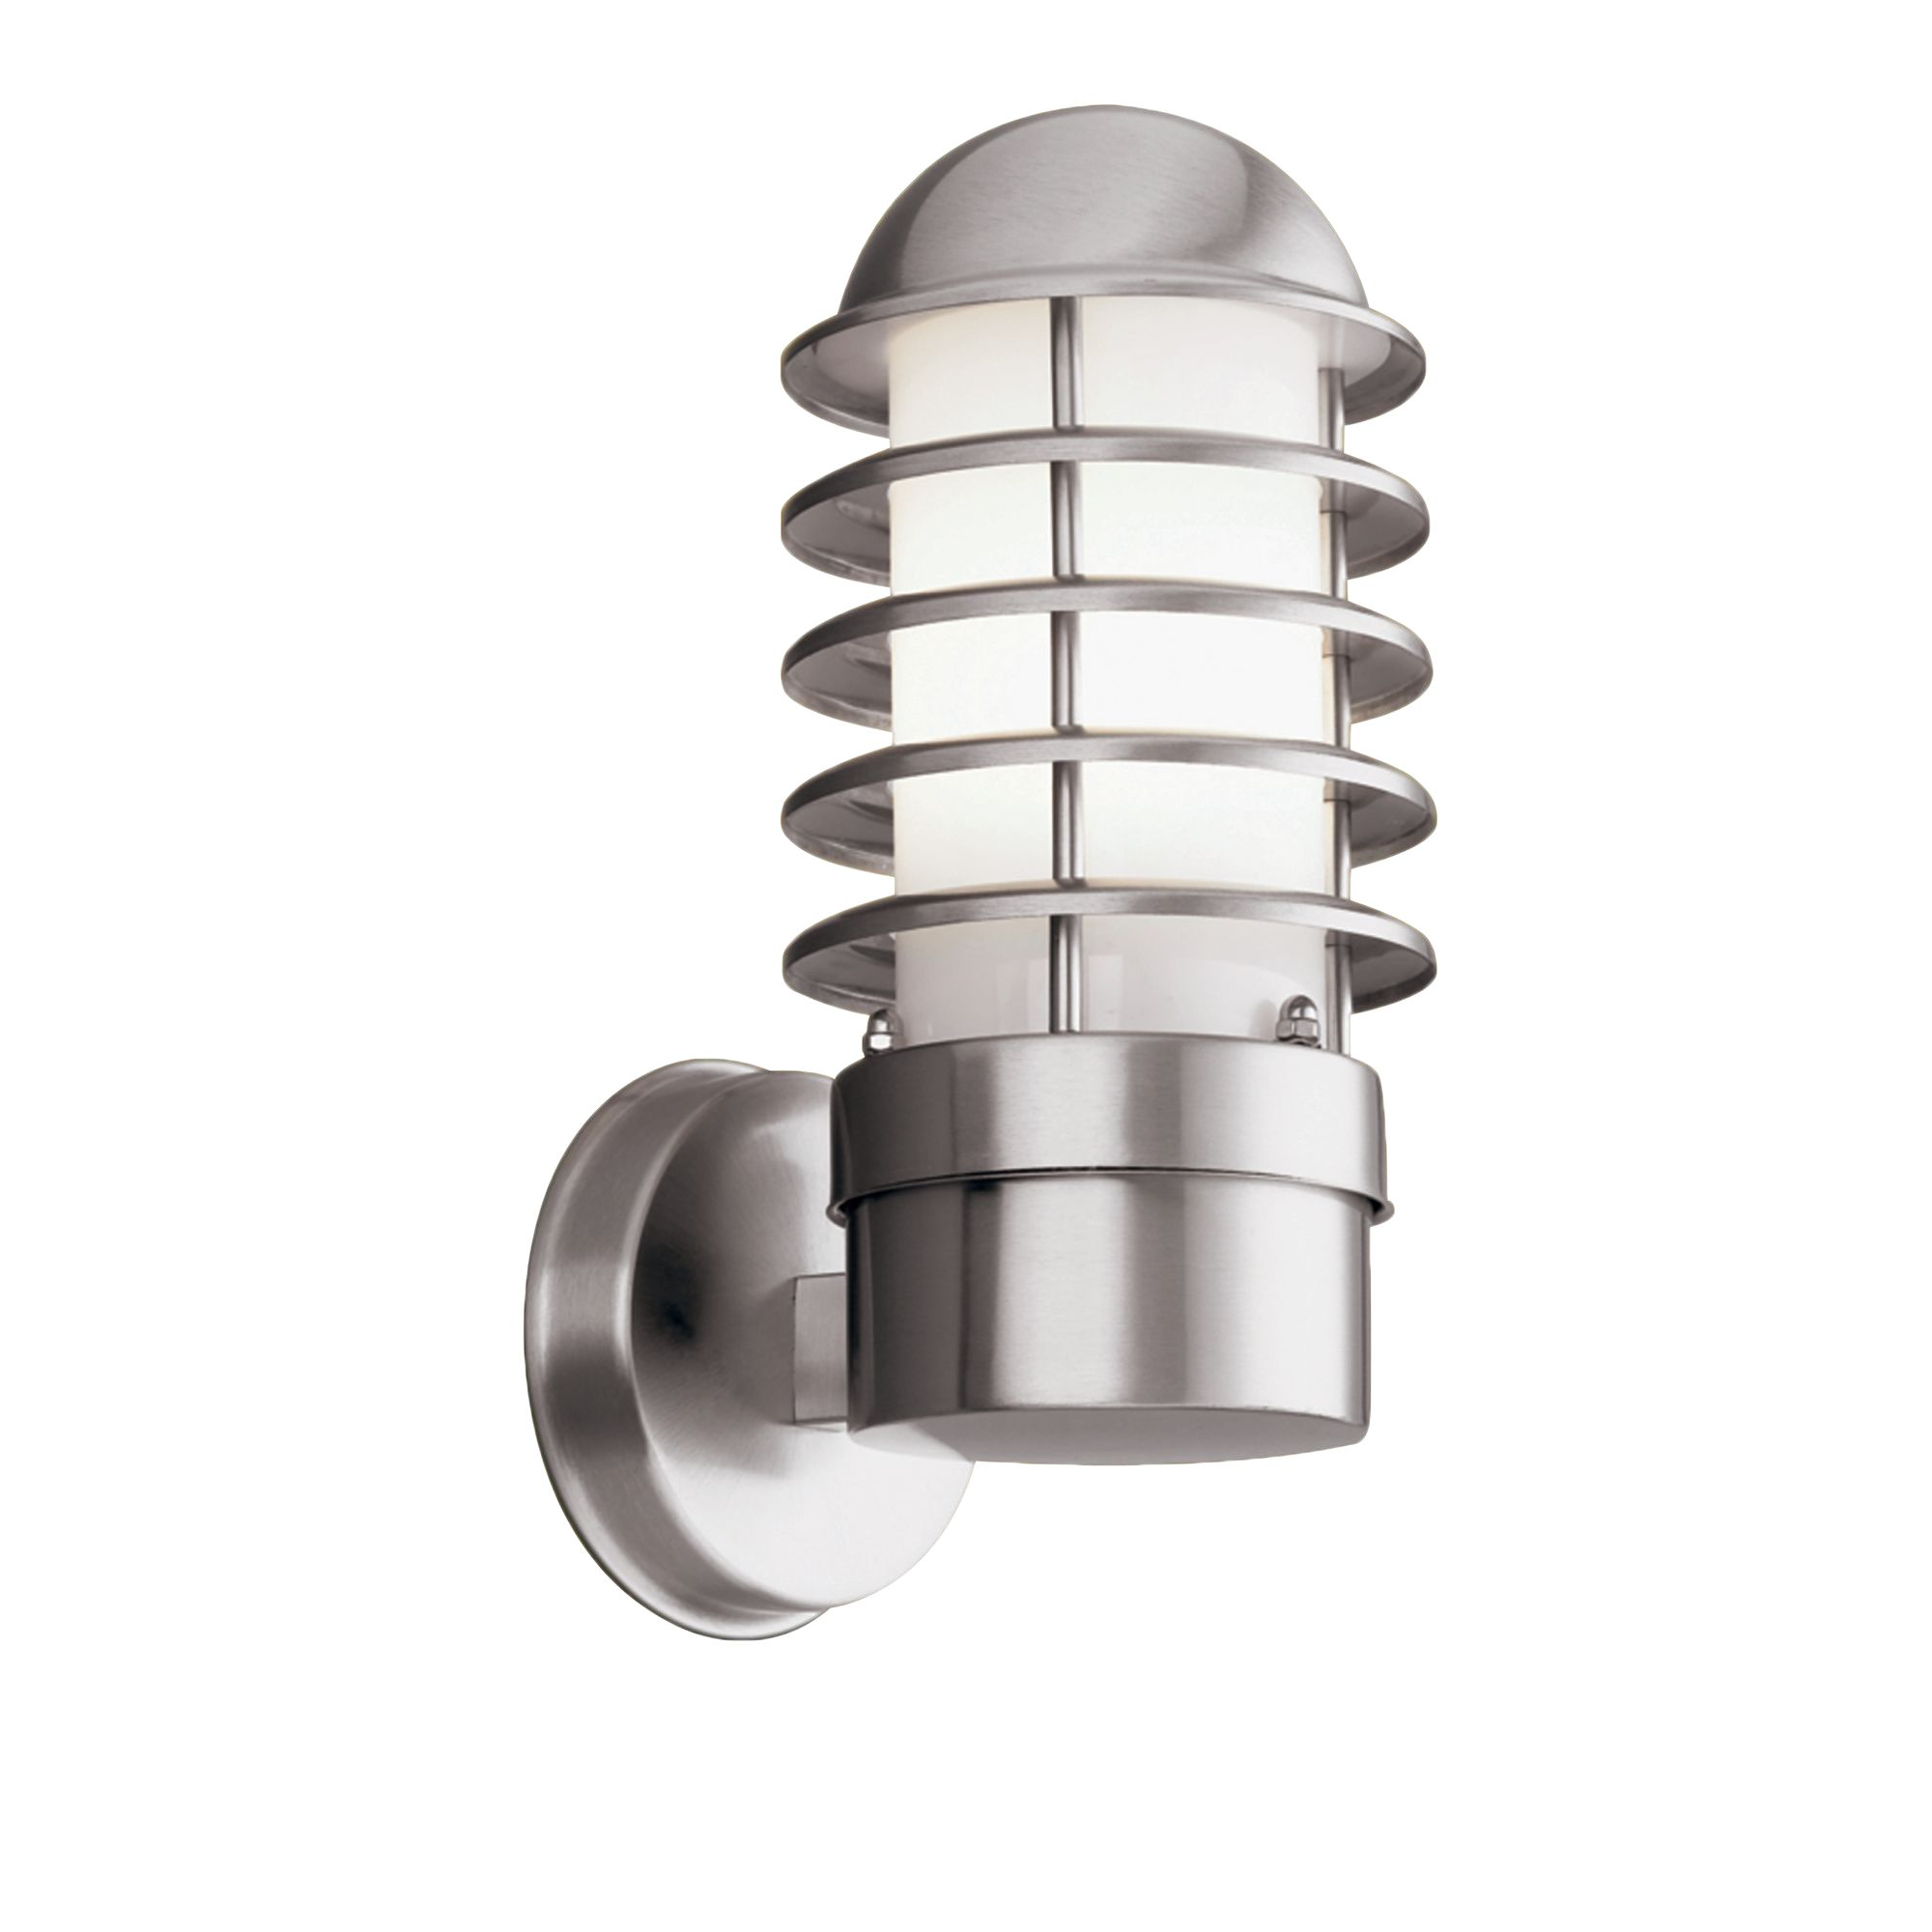 Stainless Steel Ip44 Outdoor Light With Polycarbonate Diffuser